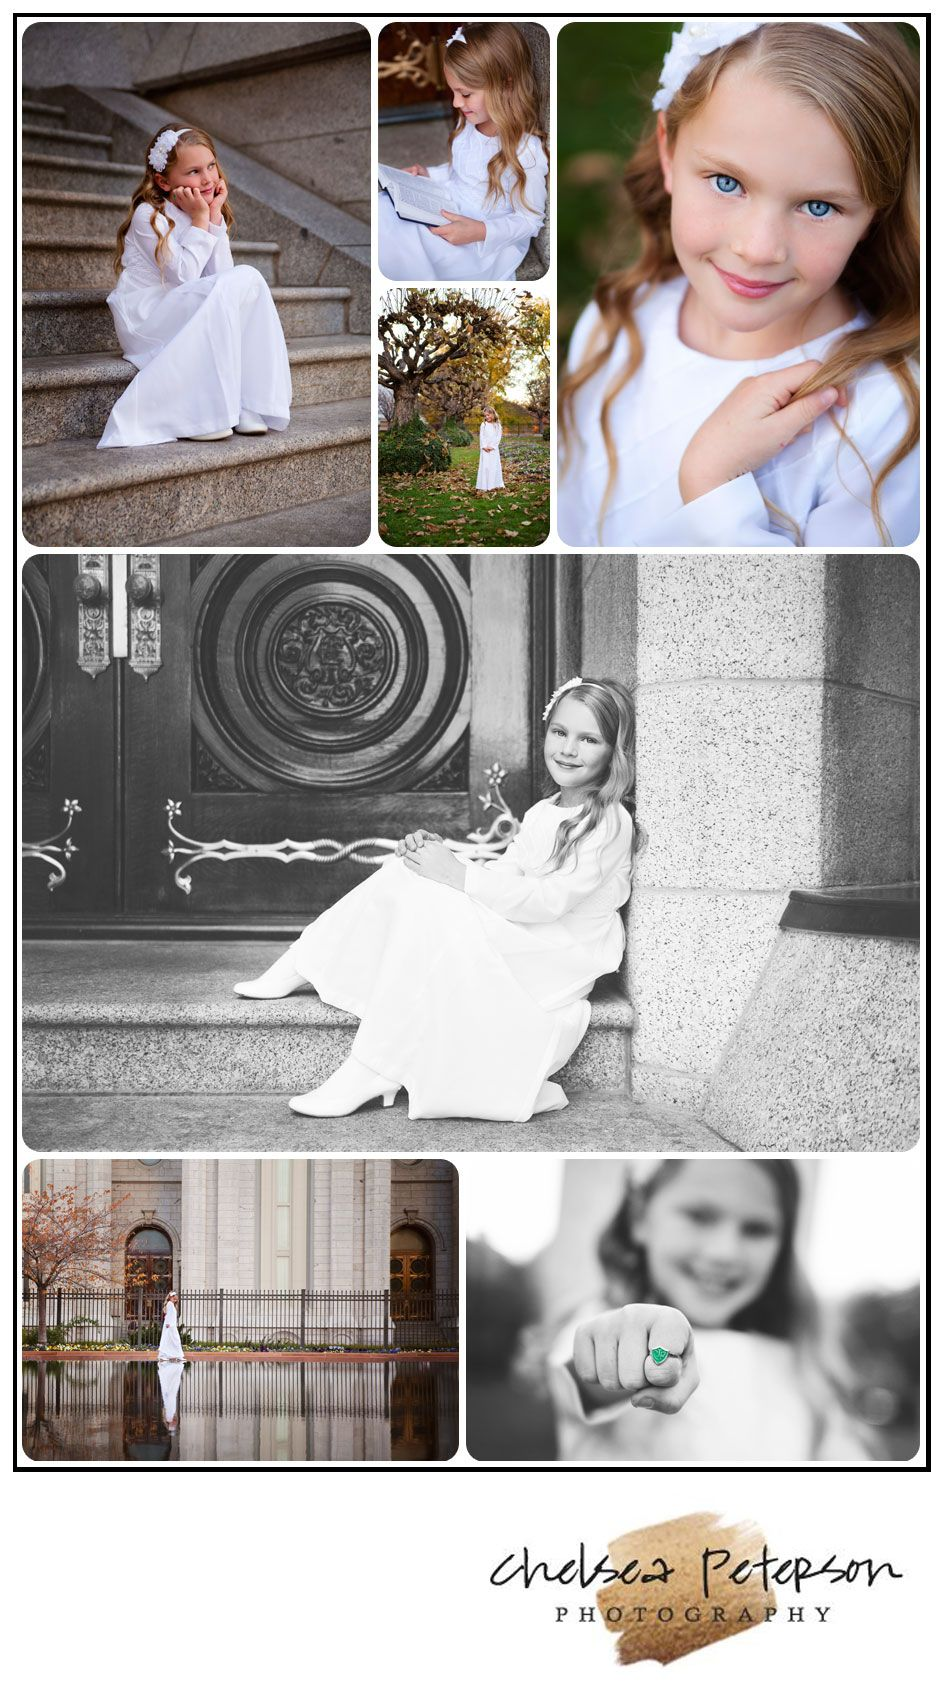 Chelsea Peterson Photography: Baptism Photography { Salt Lake City ...